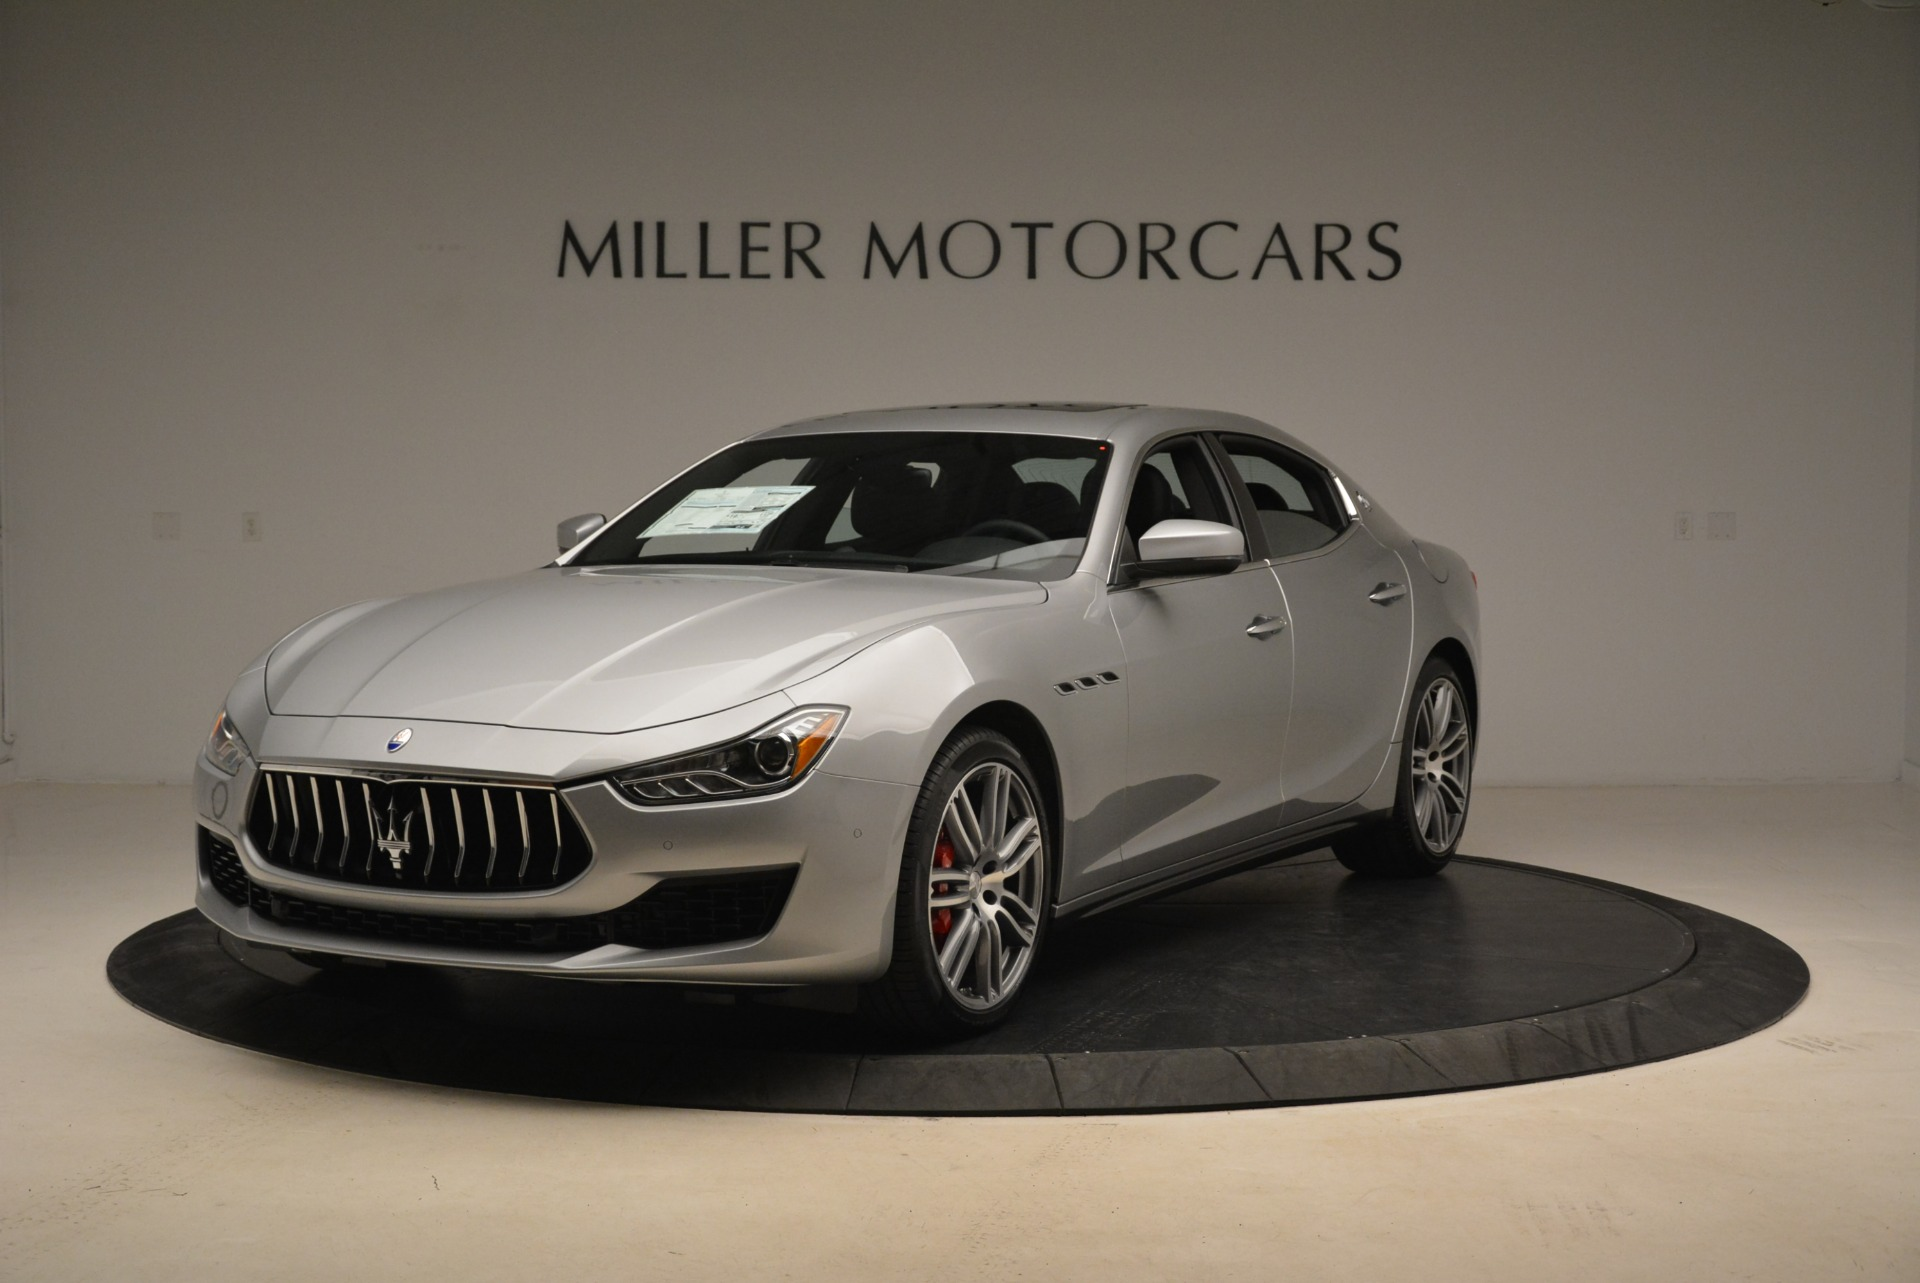 Used 2018 Maserati Ghibli S Q4 for sale Sold at Bugatti of Greenwich in Greenwich CT 06830 1